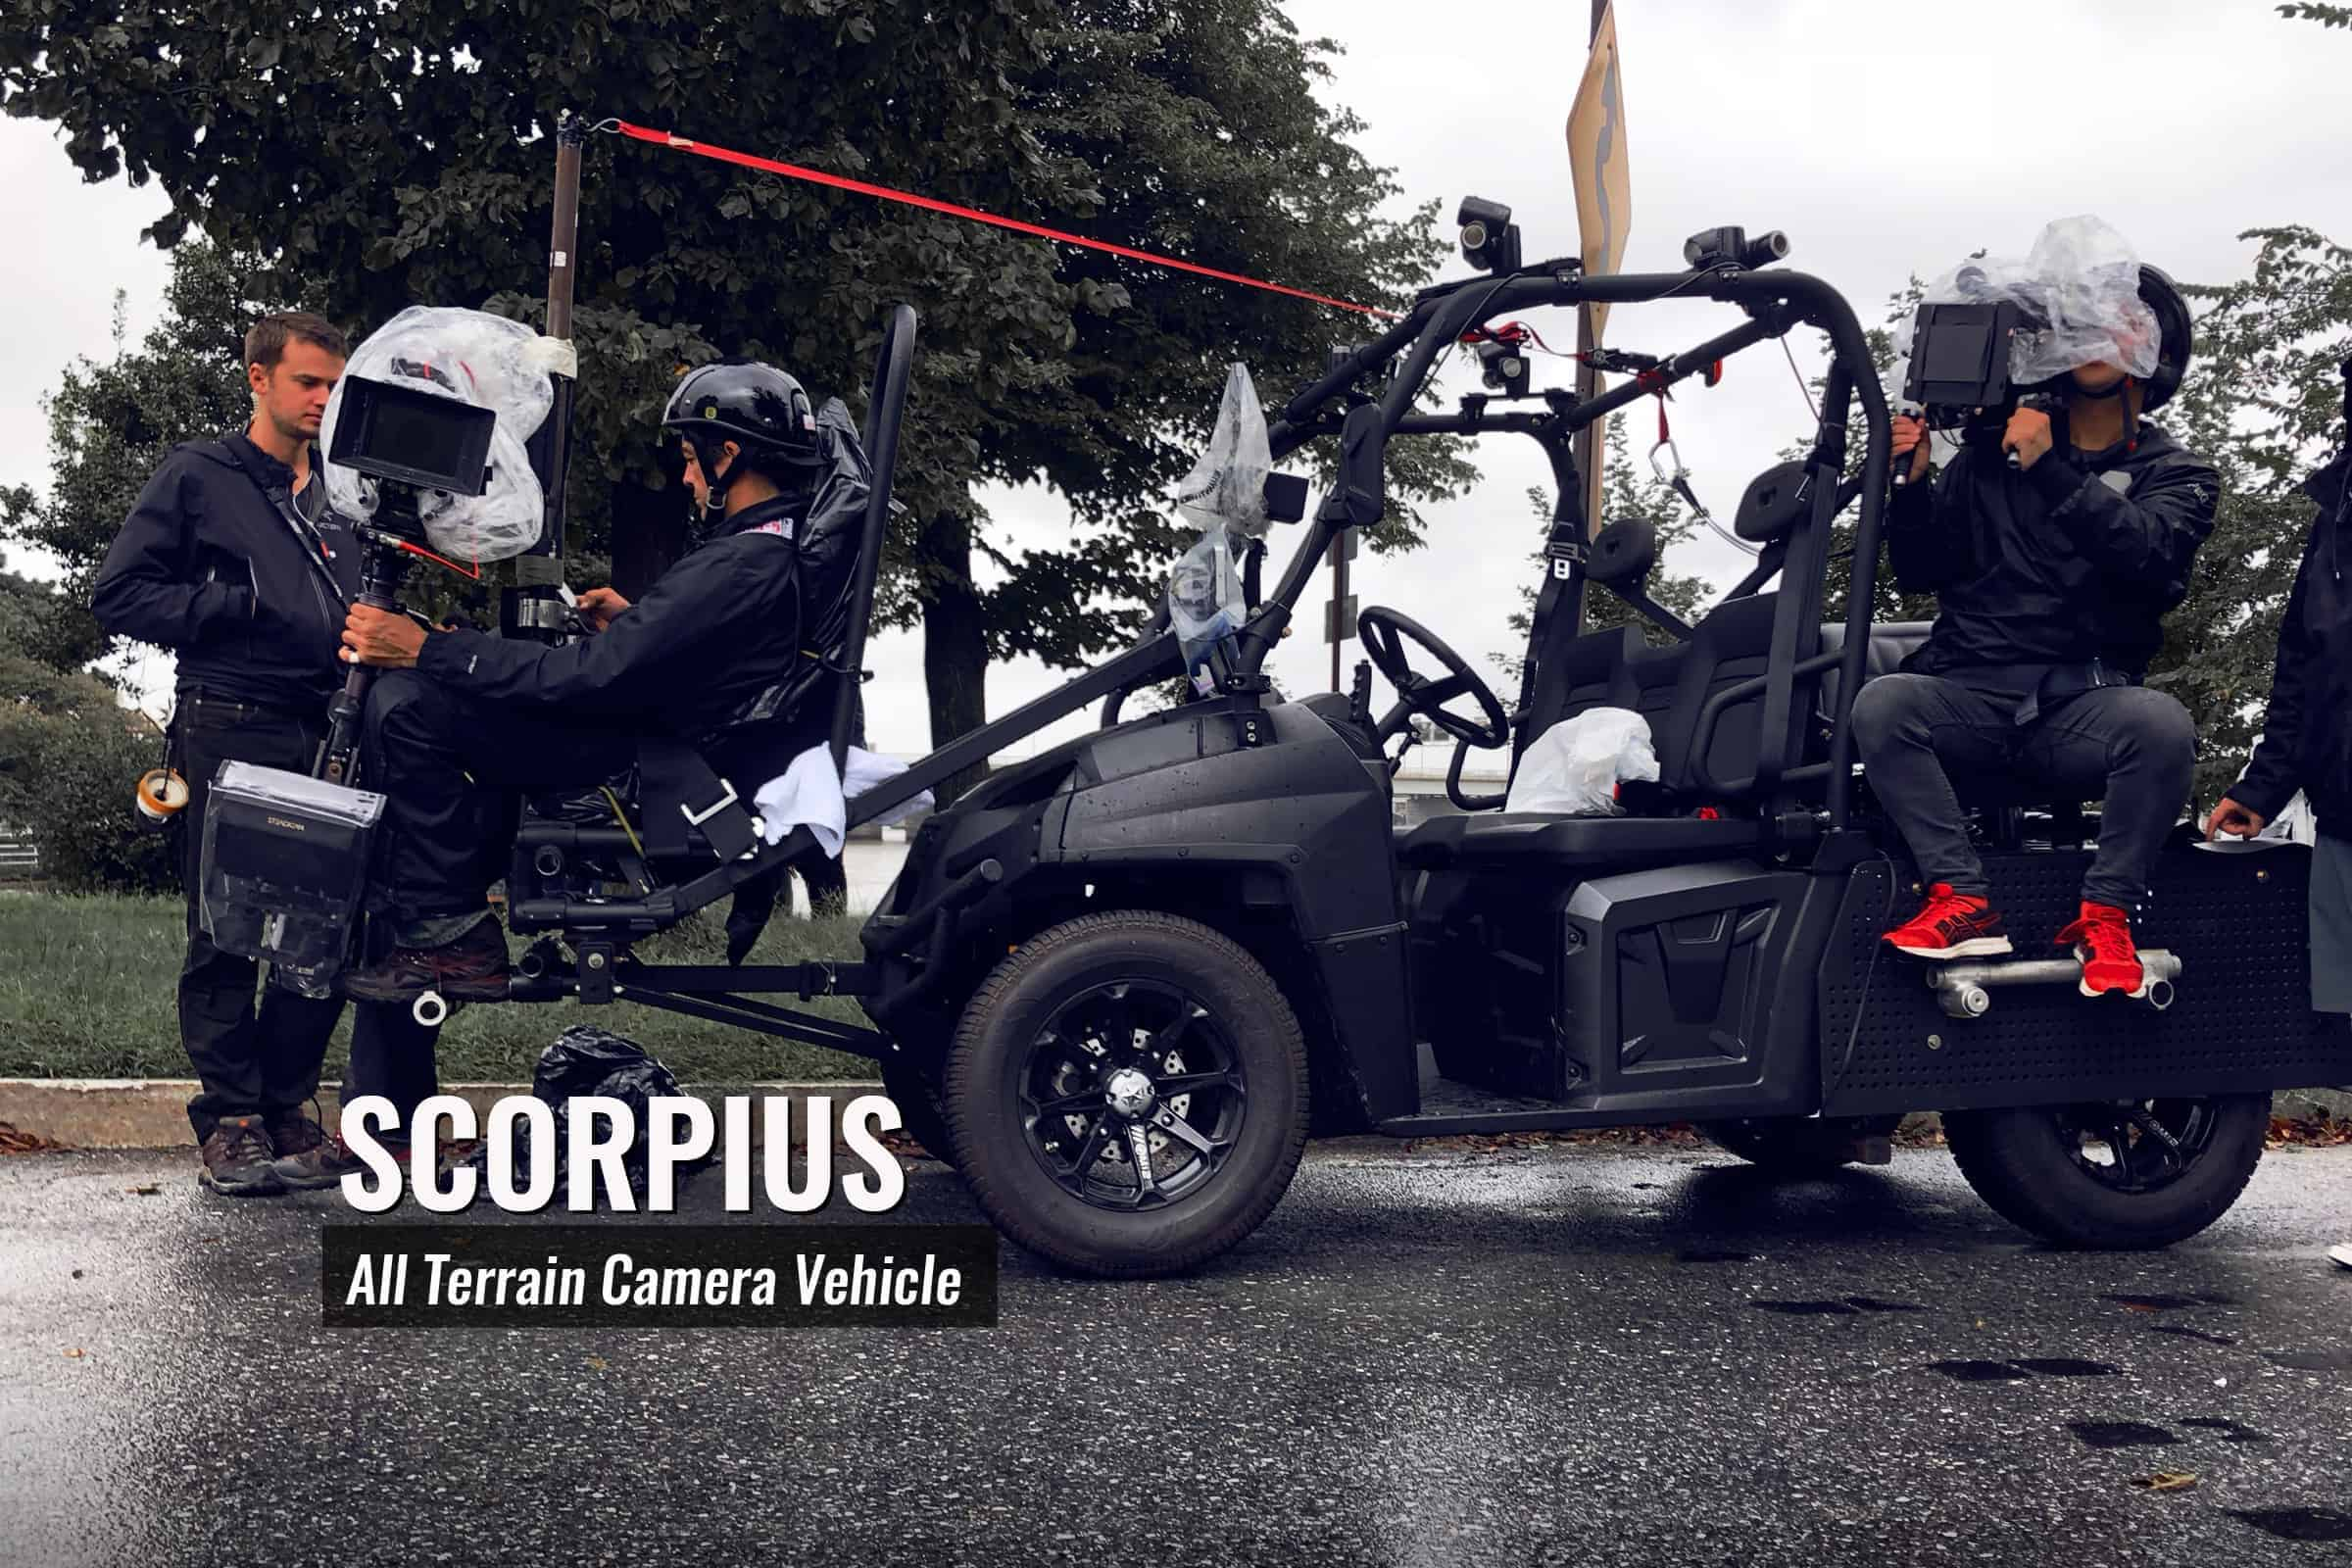 Scorpius Camera Vehicle by Motion House